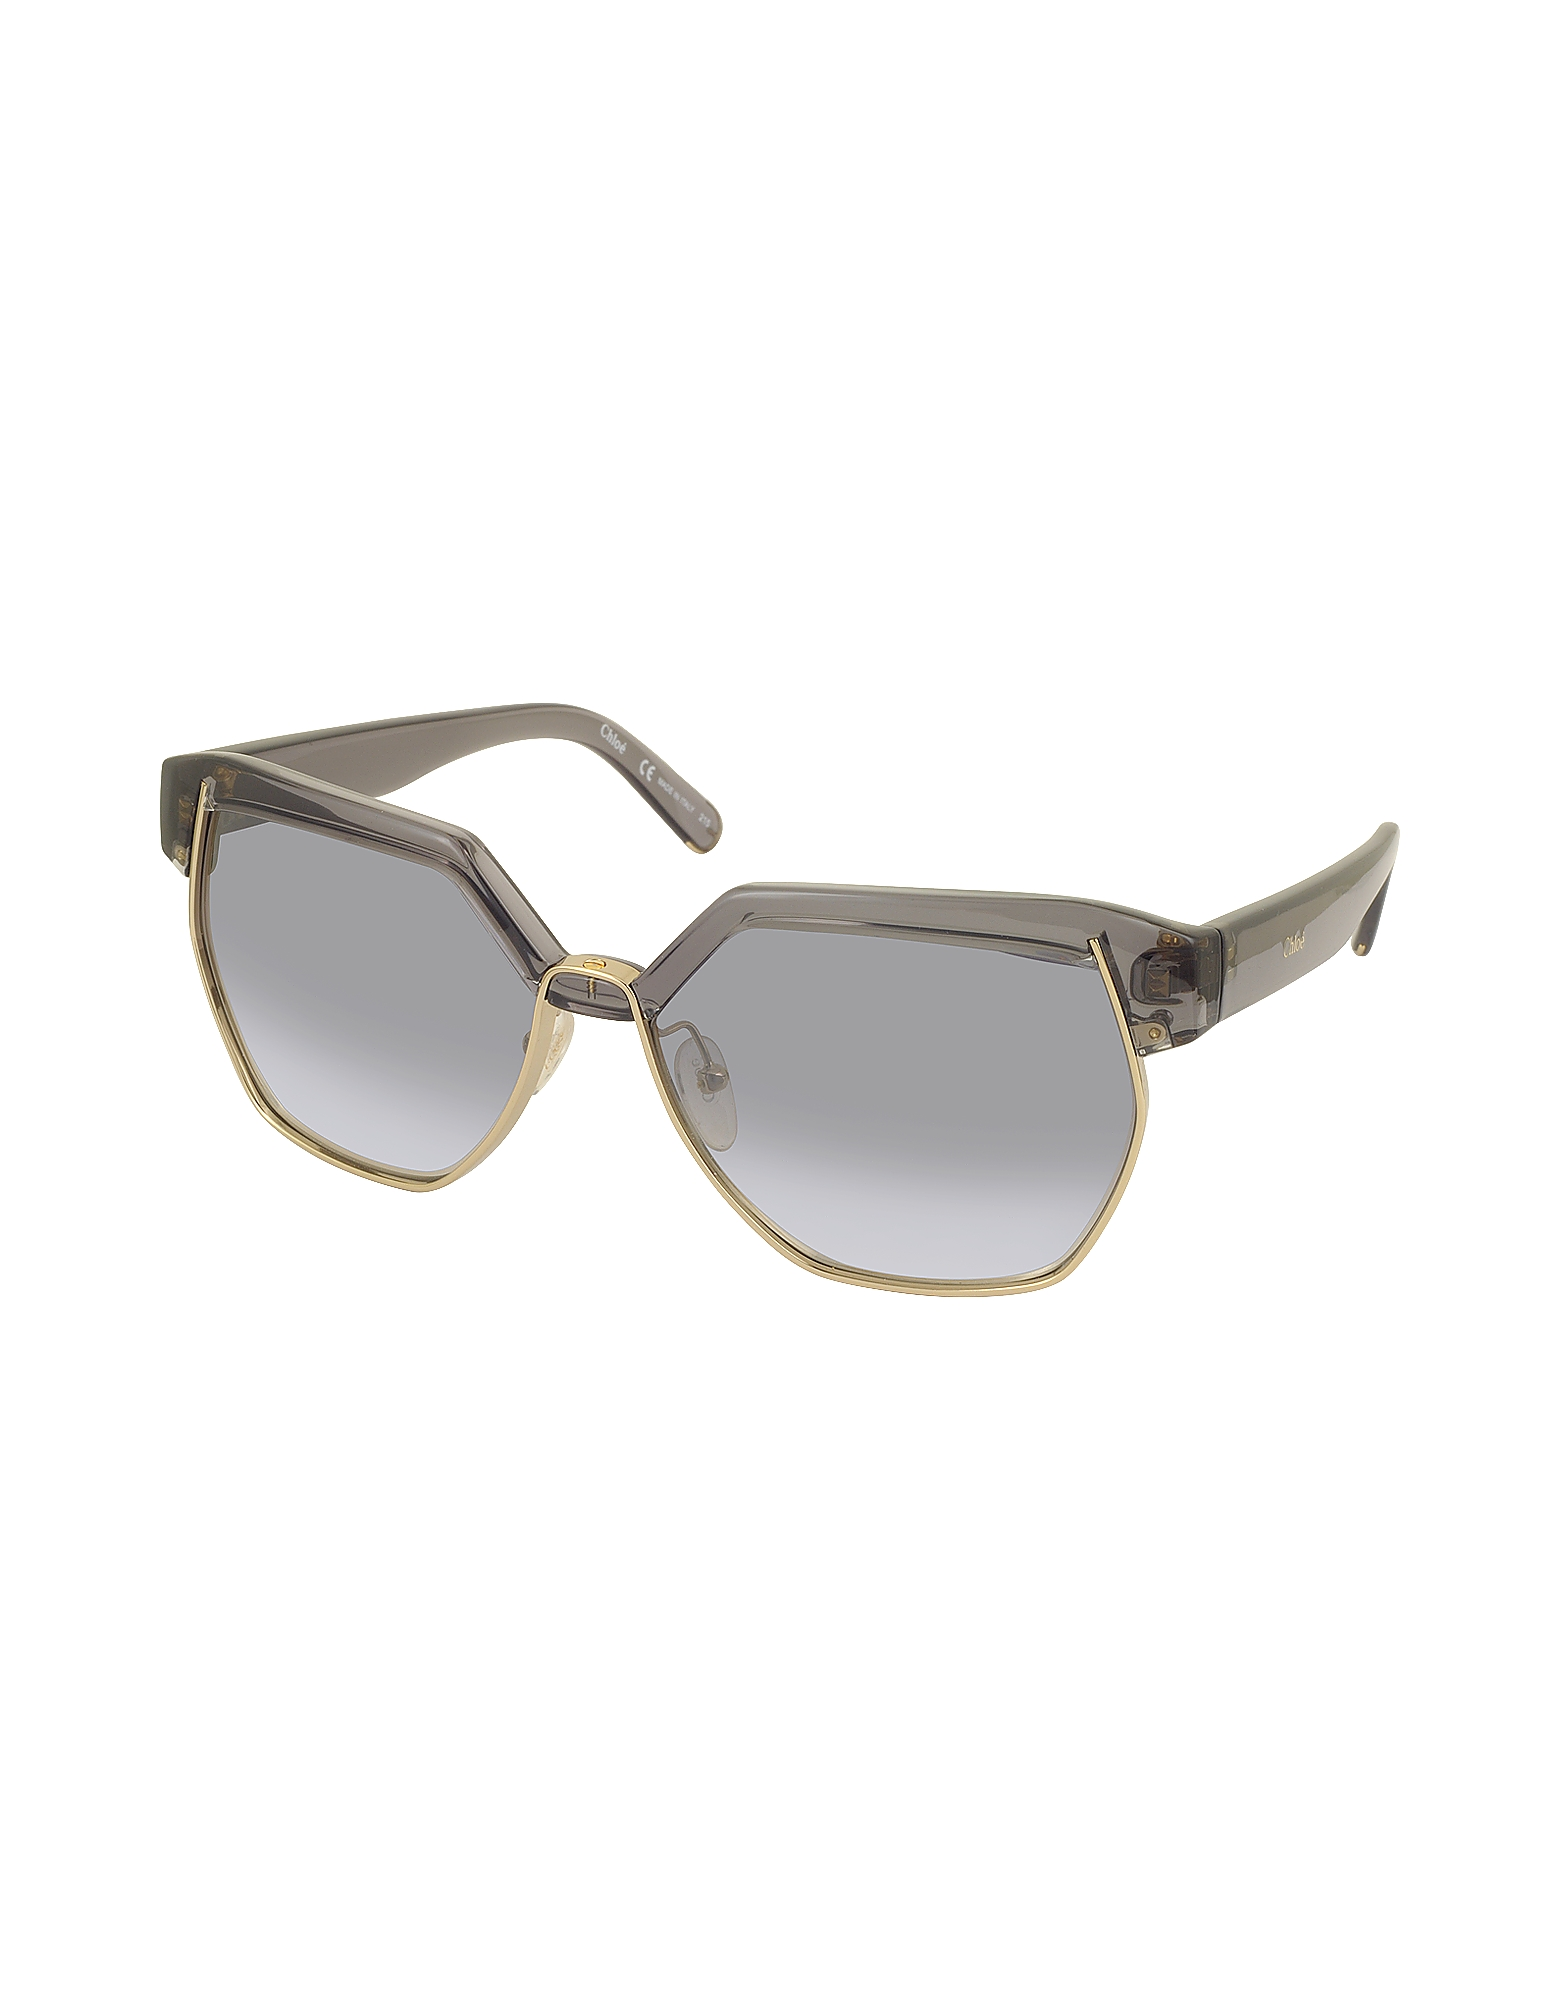 DAFNE CE 665S 036 Gray Acetate and Gold Metal Geometric Women's Sunglasses от Forzieri.com INT